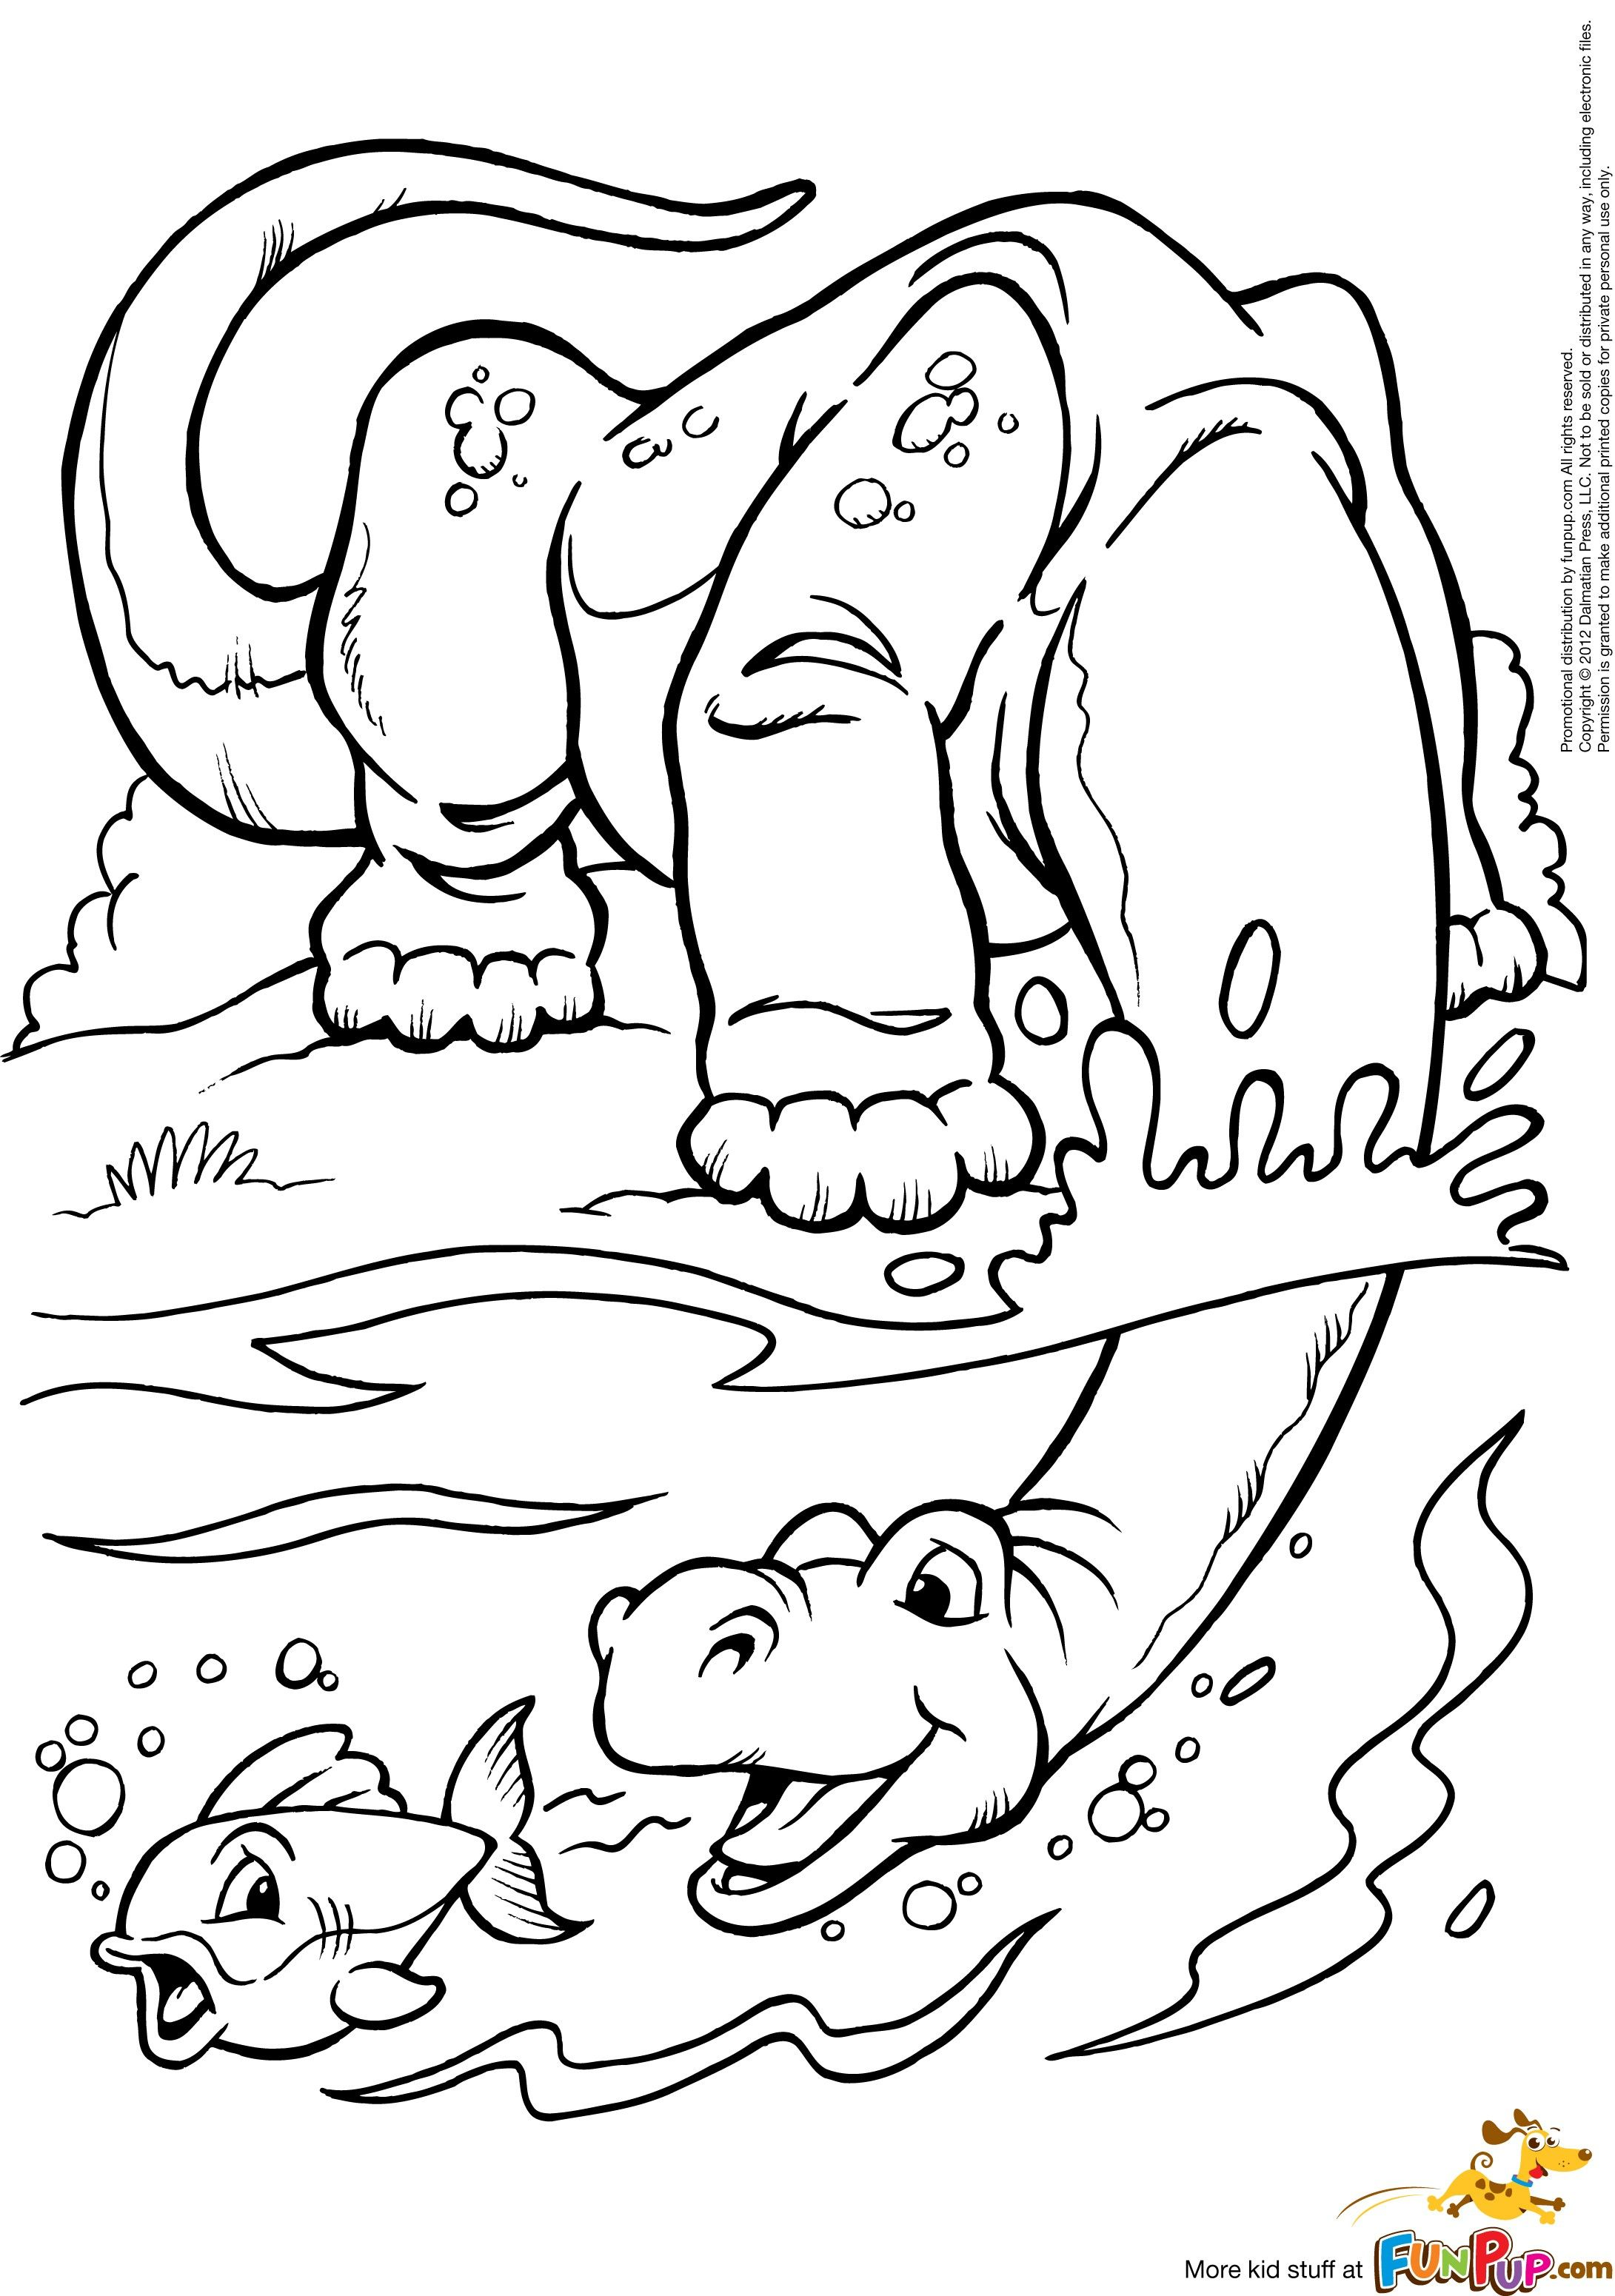 Dinosaur And Fish 0 00 Colouring Images Pinterest Dinosaurier